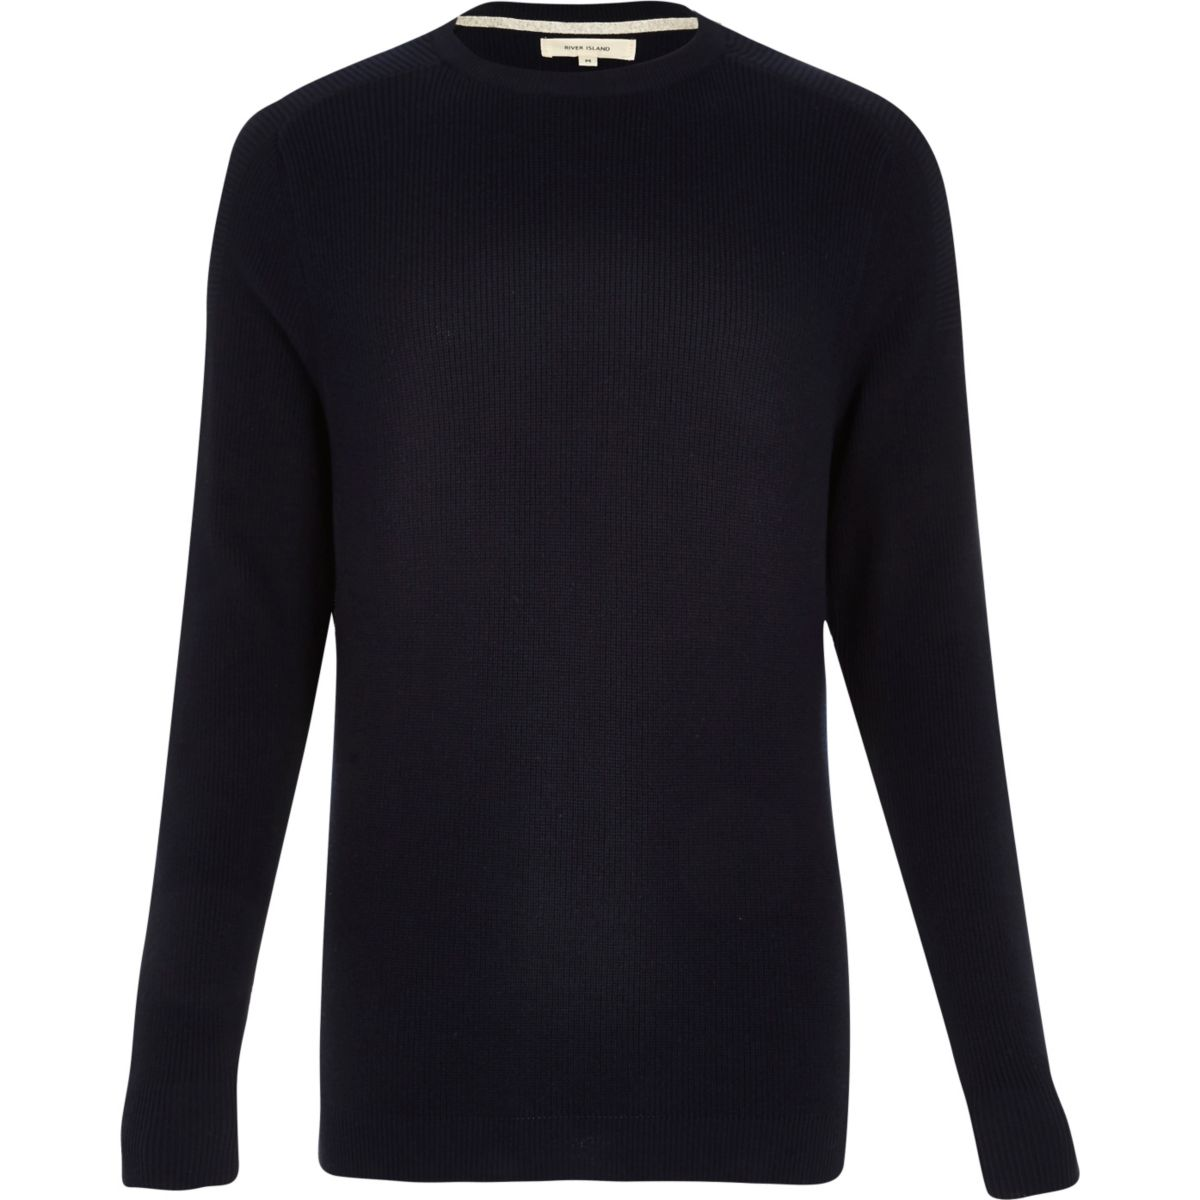 Navy textured knitted crew neck sweater